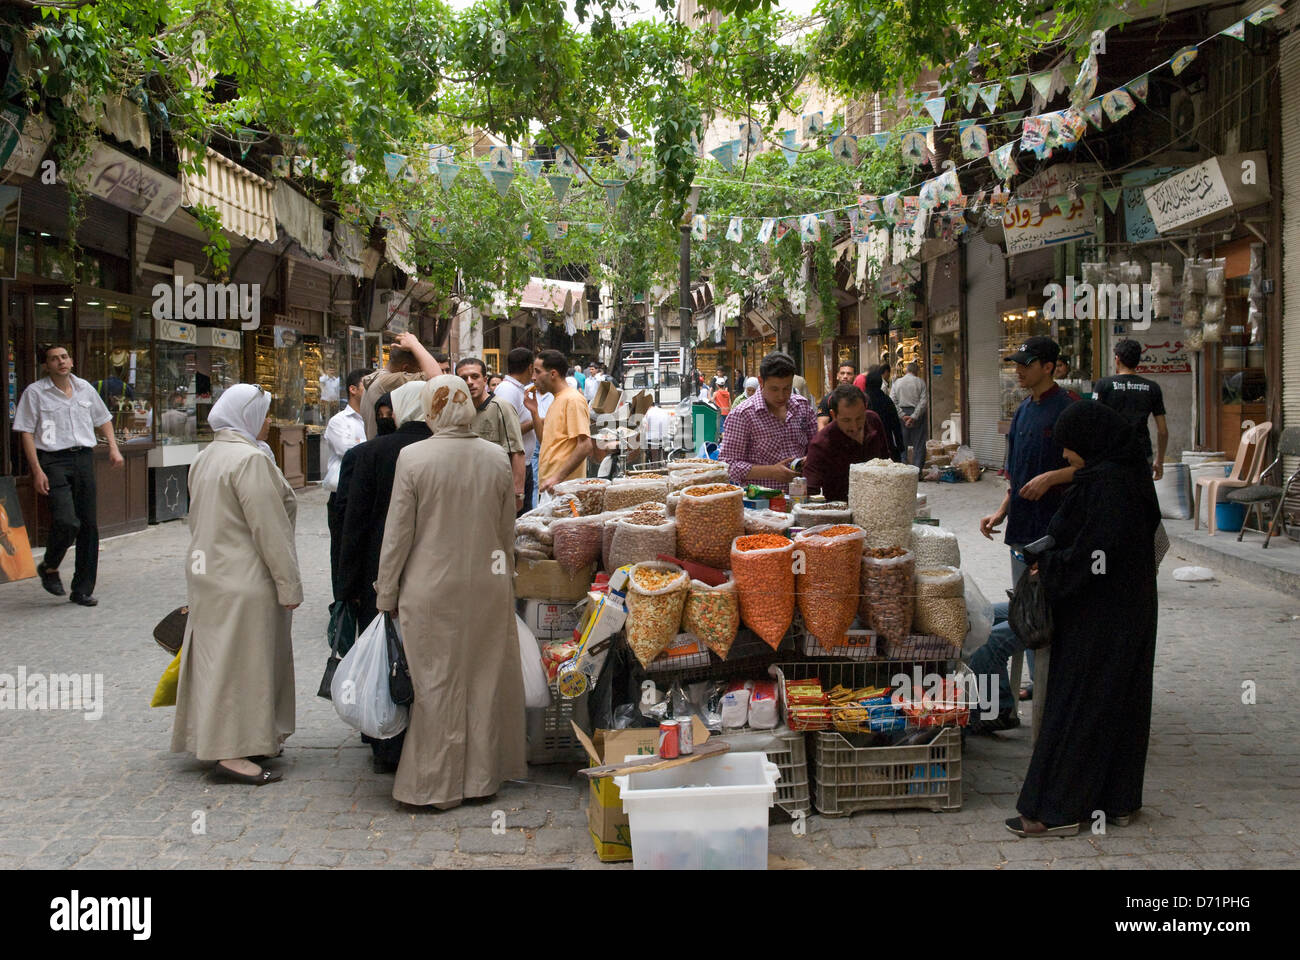 Street scene in Damascus, Syria. People shopping in a street in the historical centre. - Stock Image